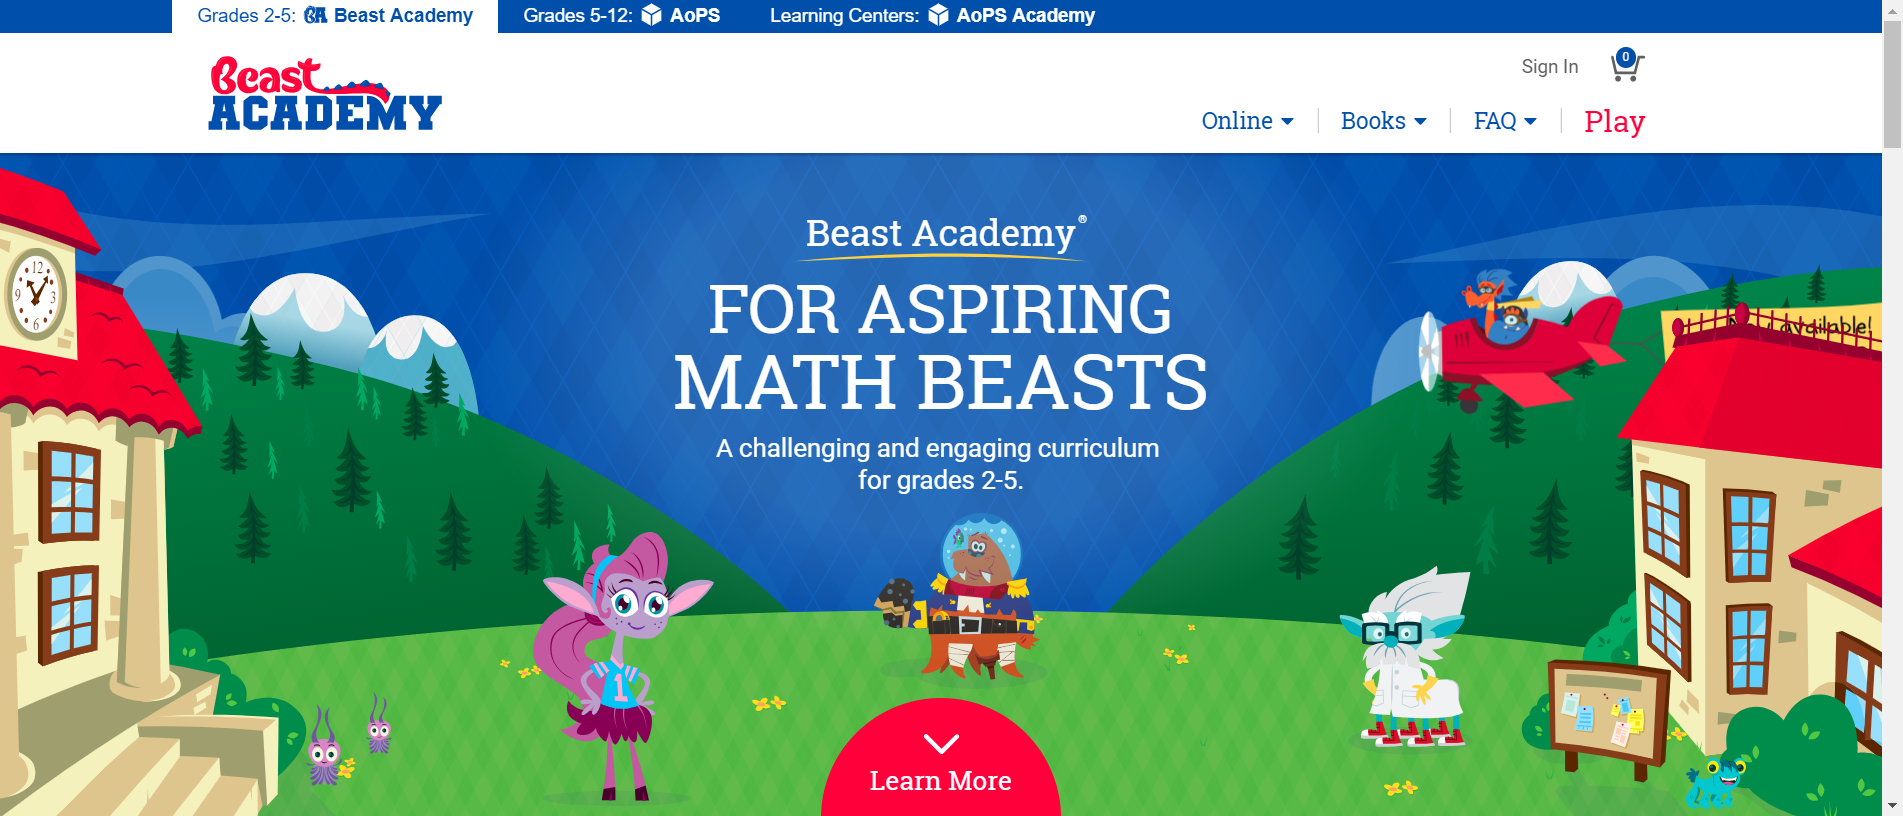 Beast Academy online or books  The Beast Academy book series is a